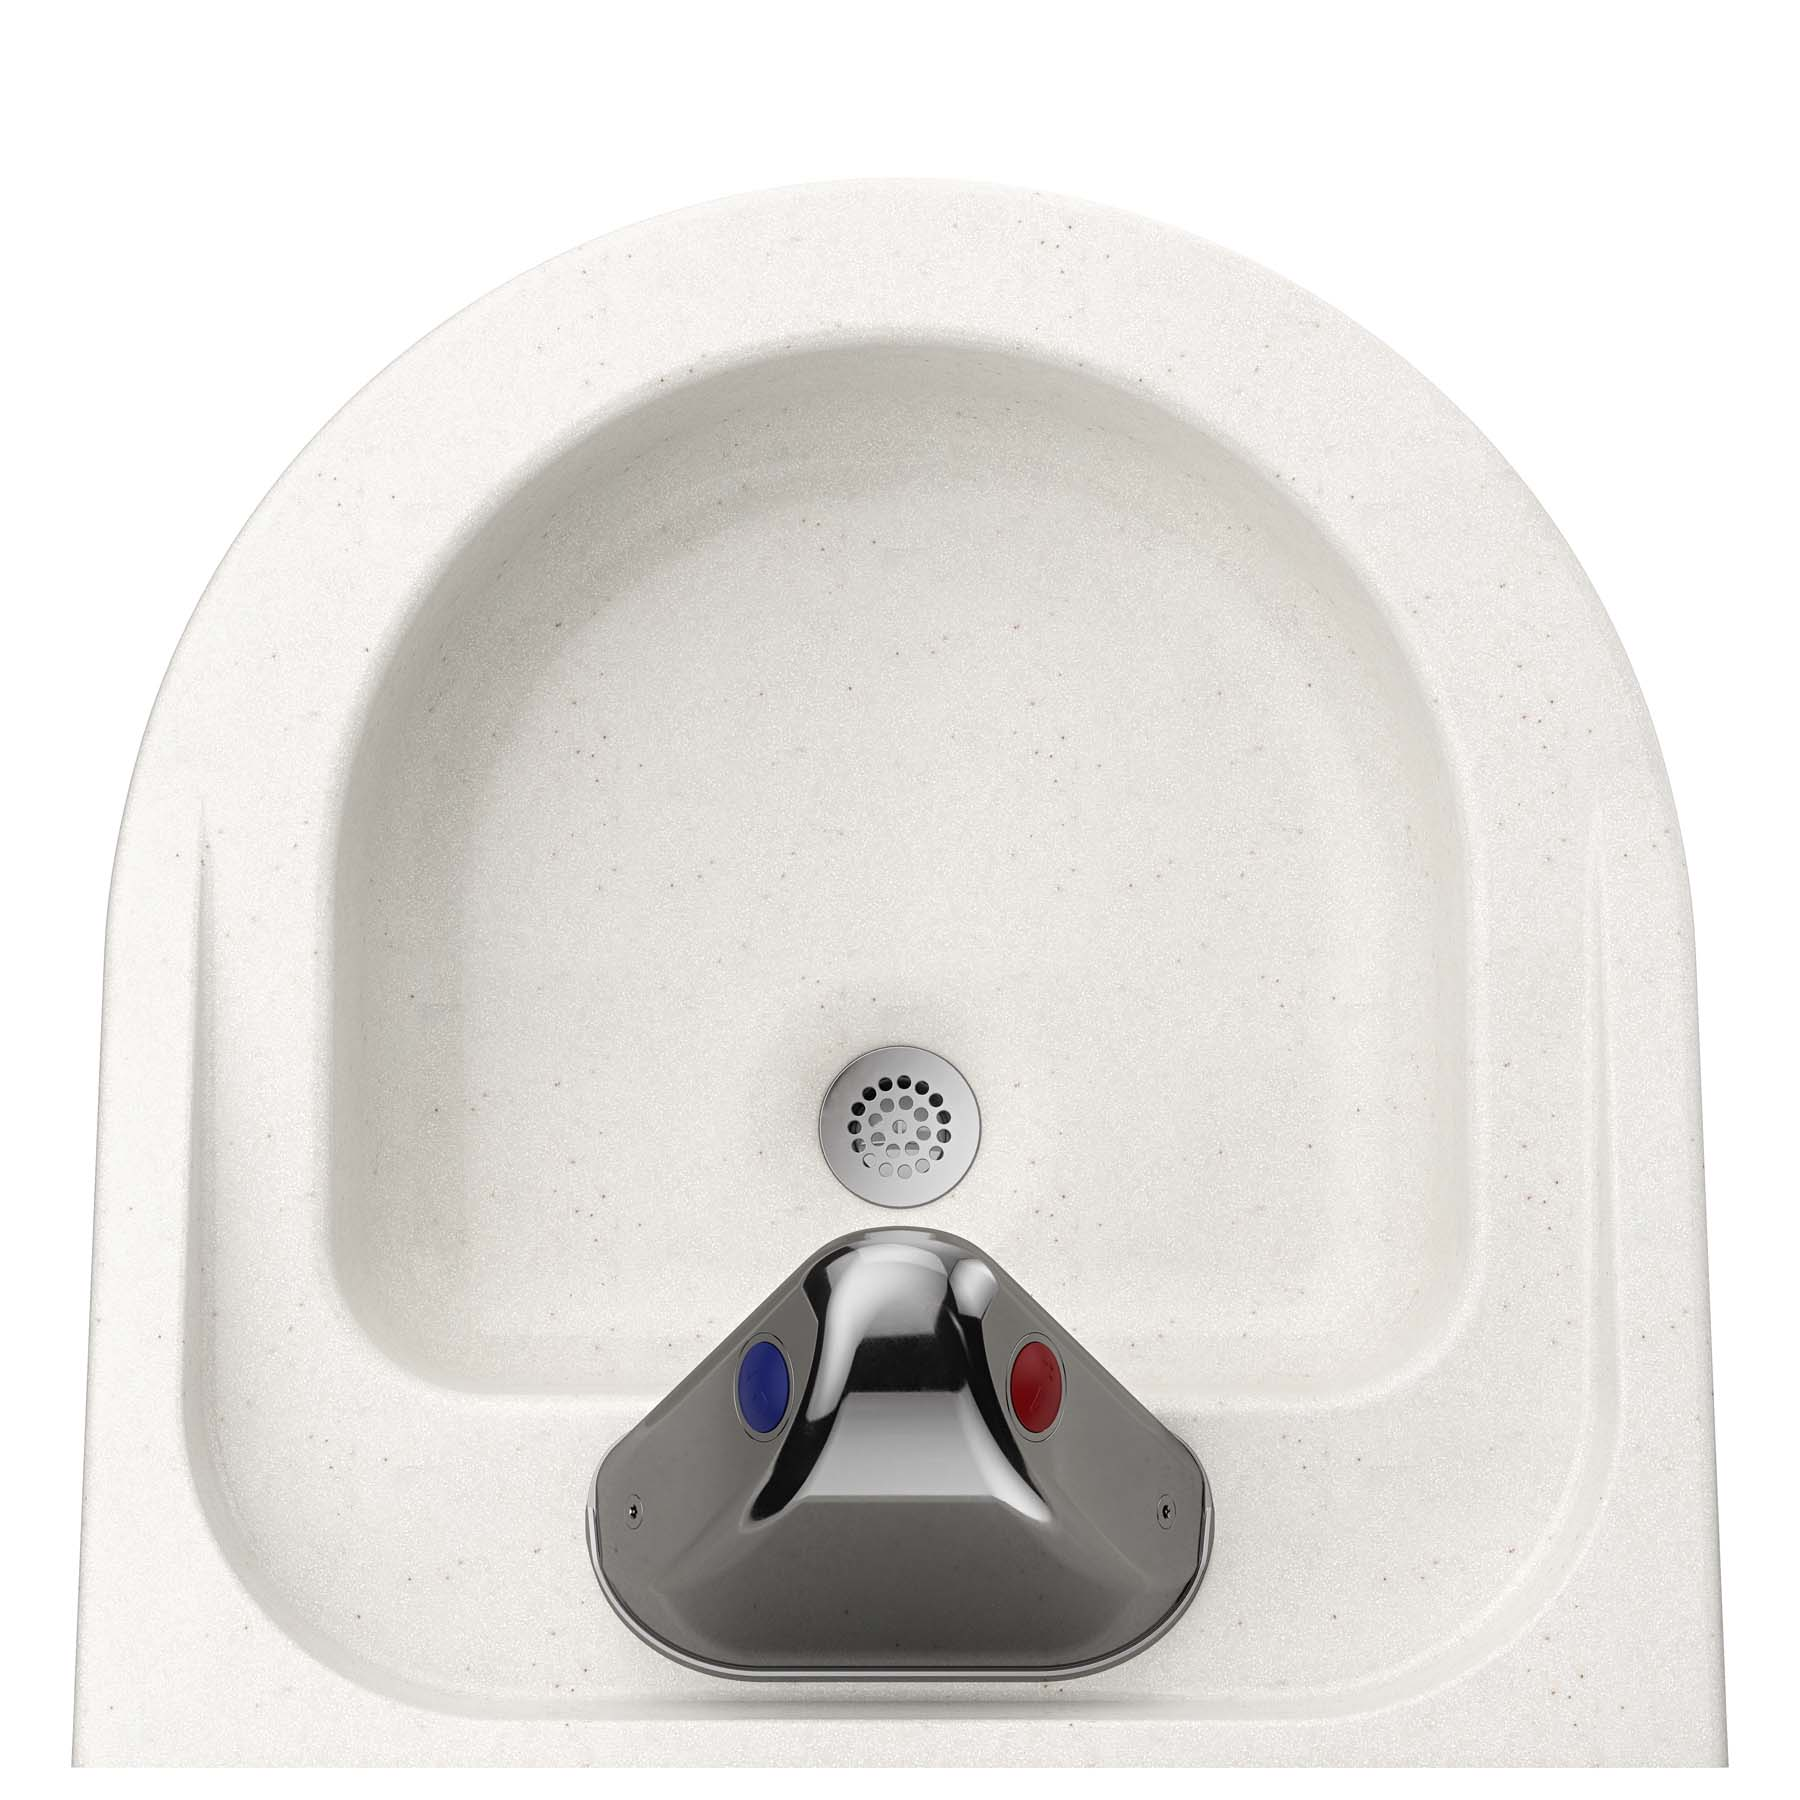 Ligature Resistant Sink and Trap Cover - Behind and On Top View